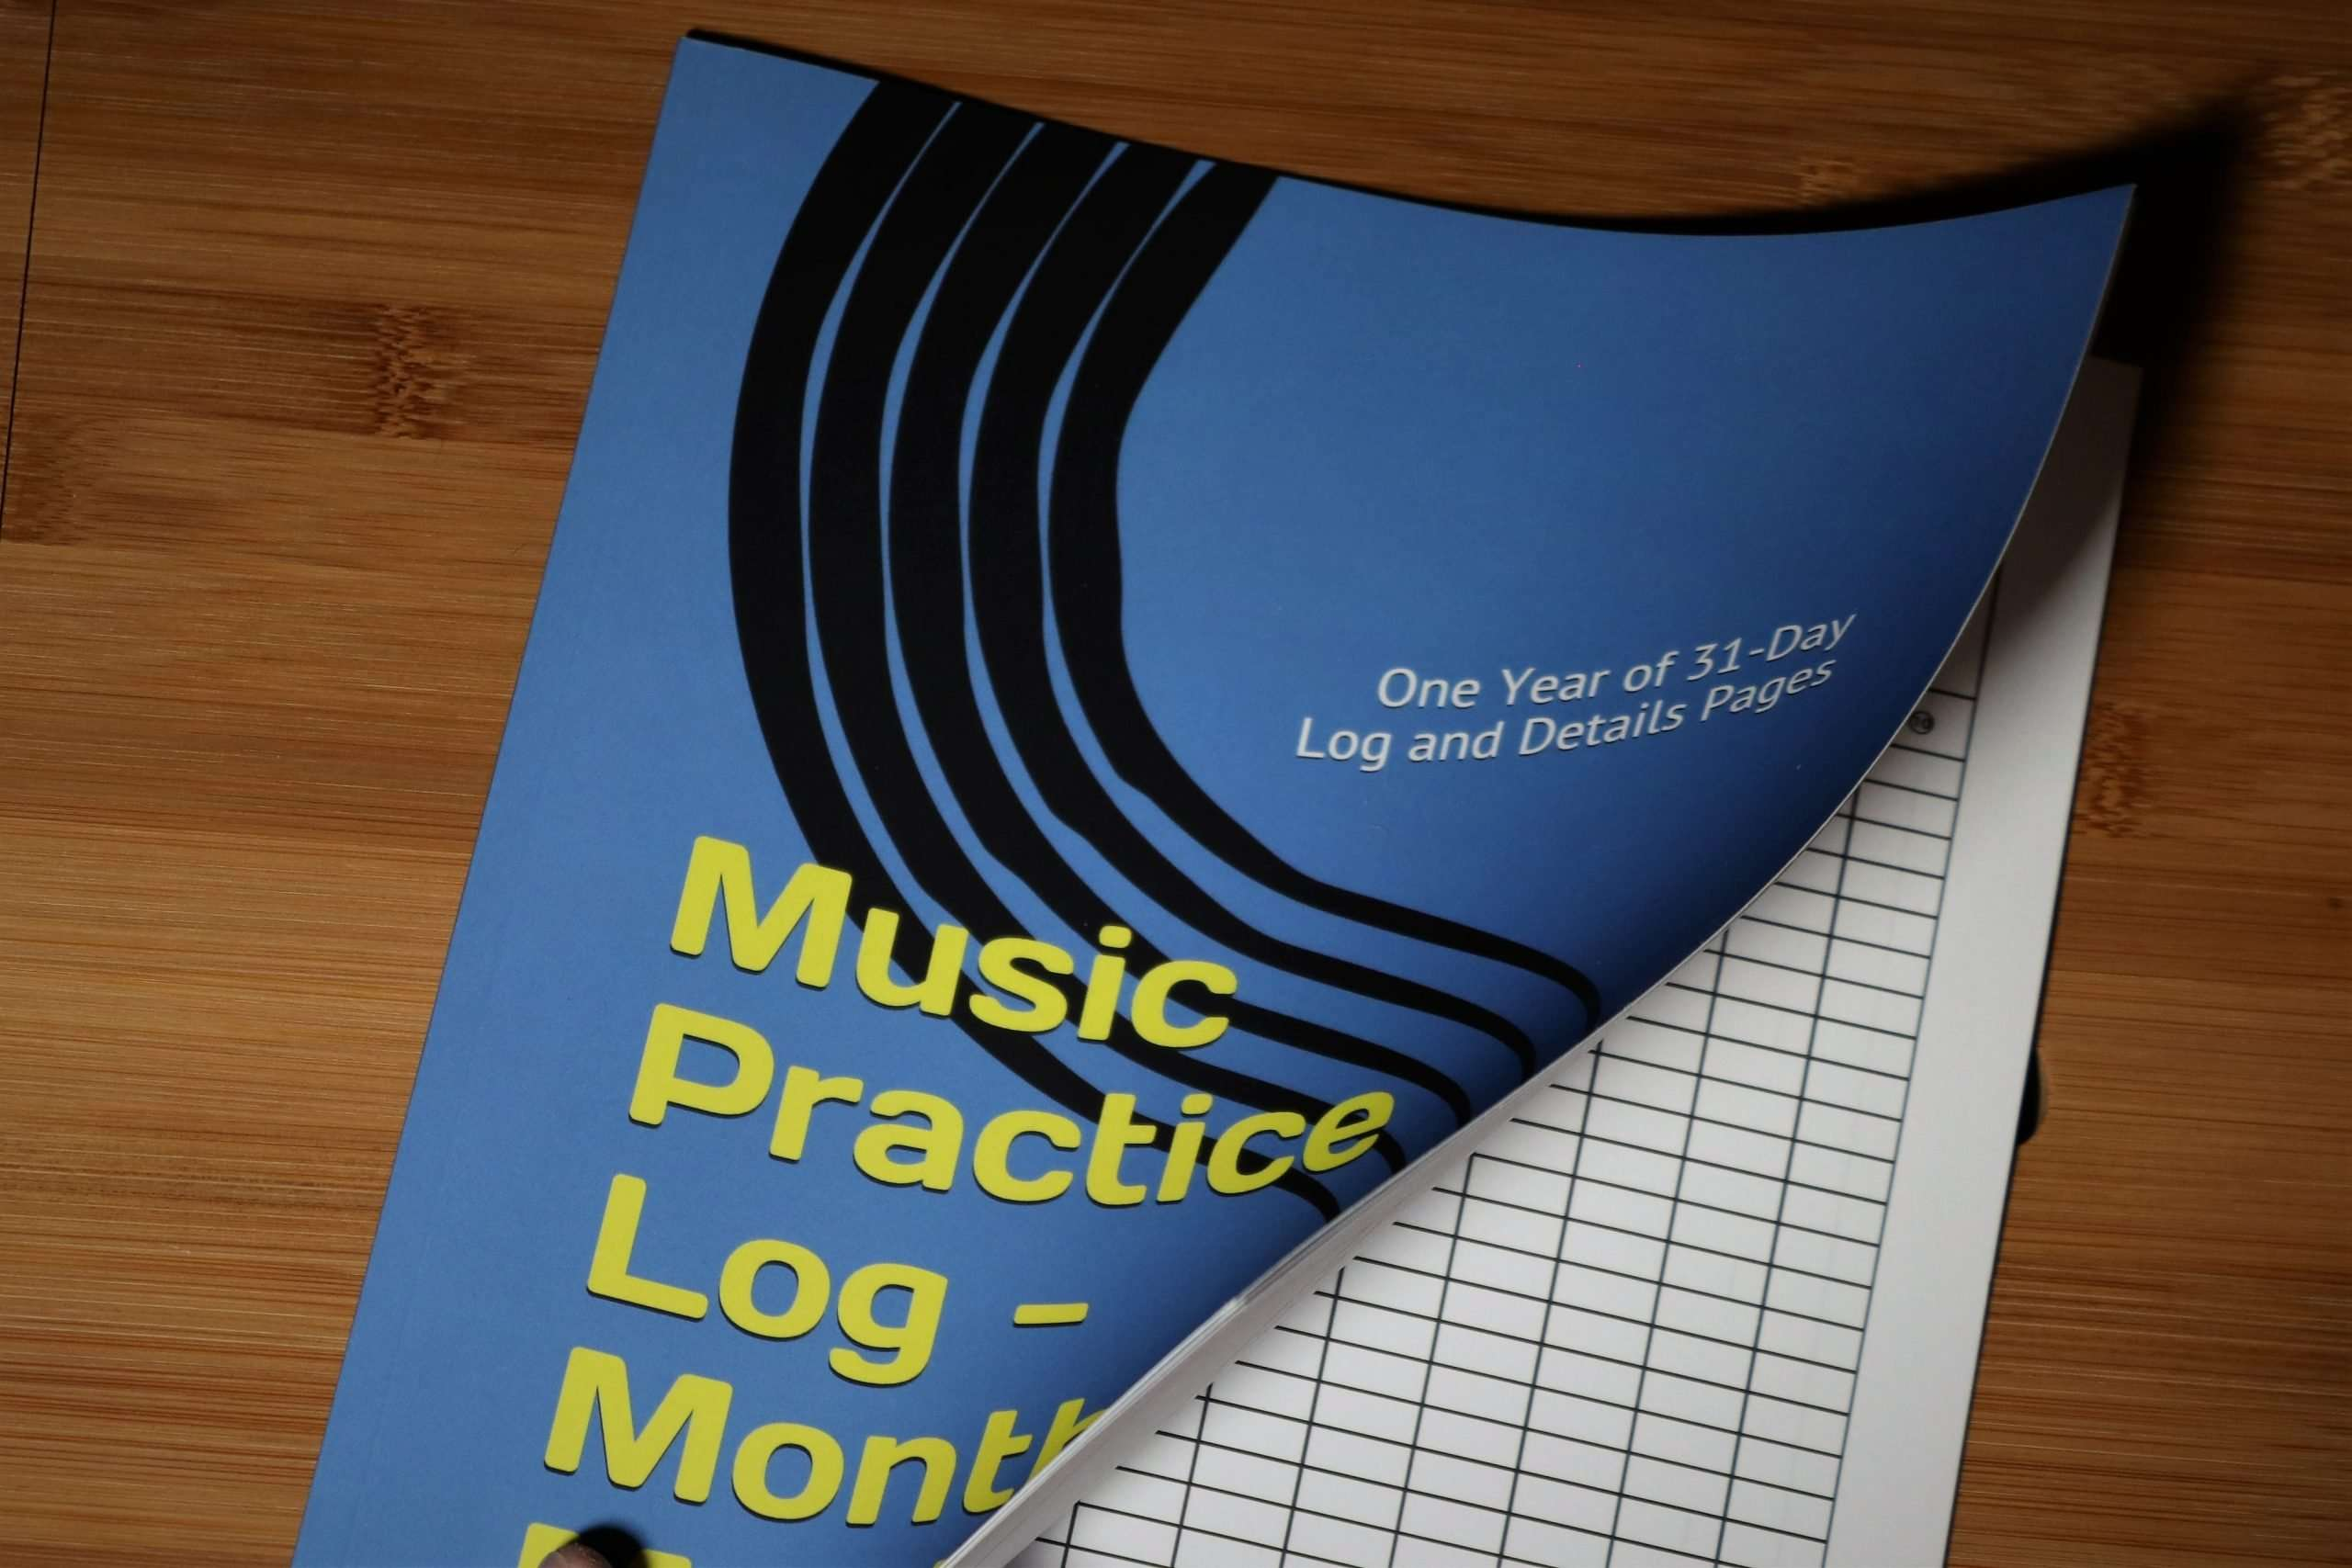 Music Practice Log - Month by Month